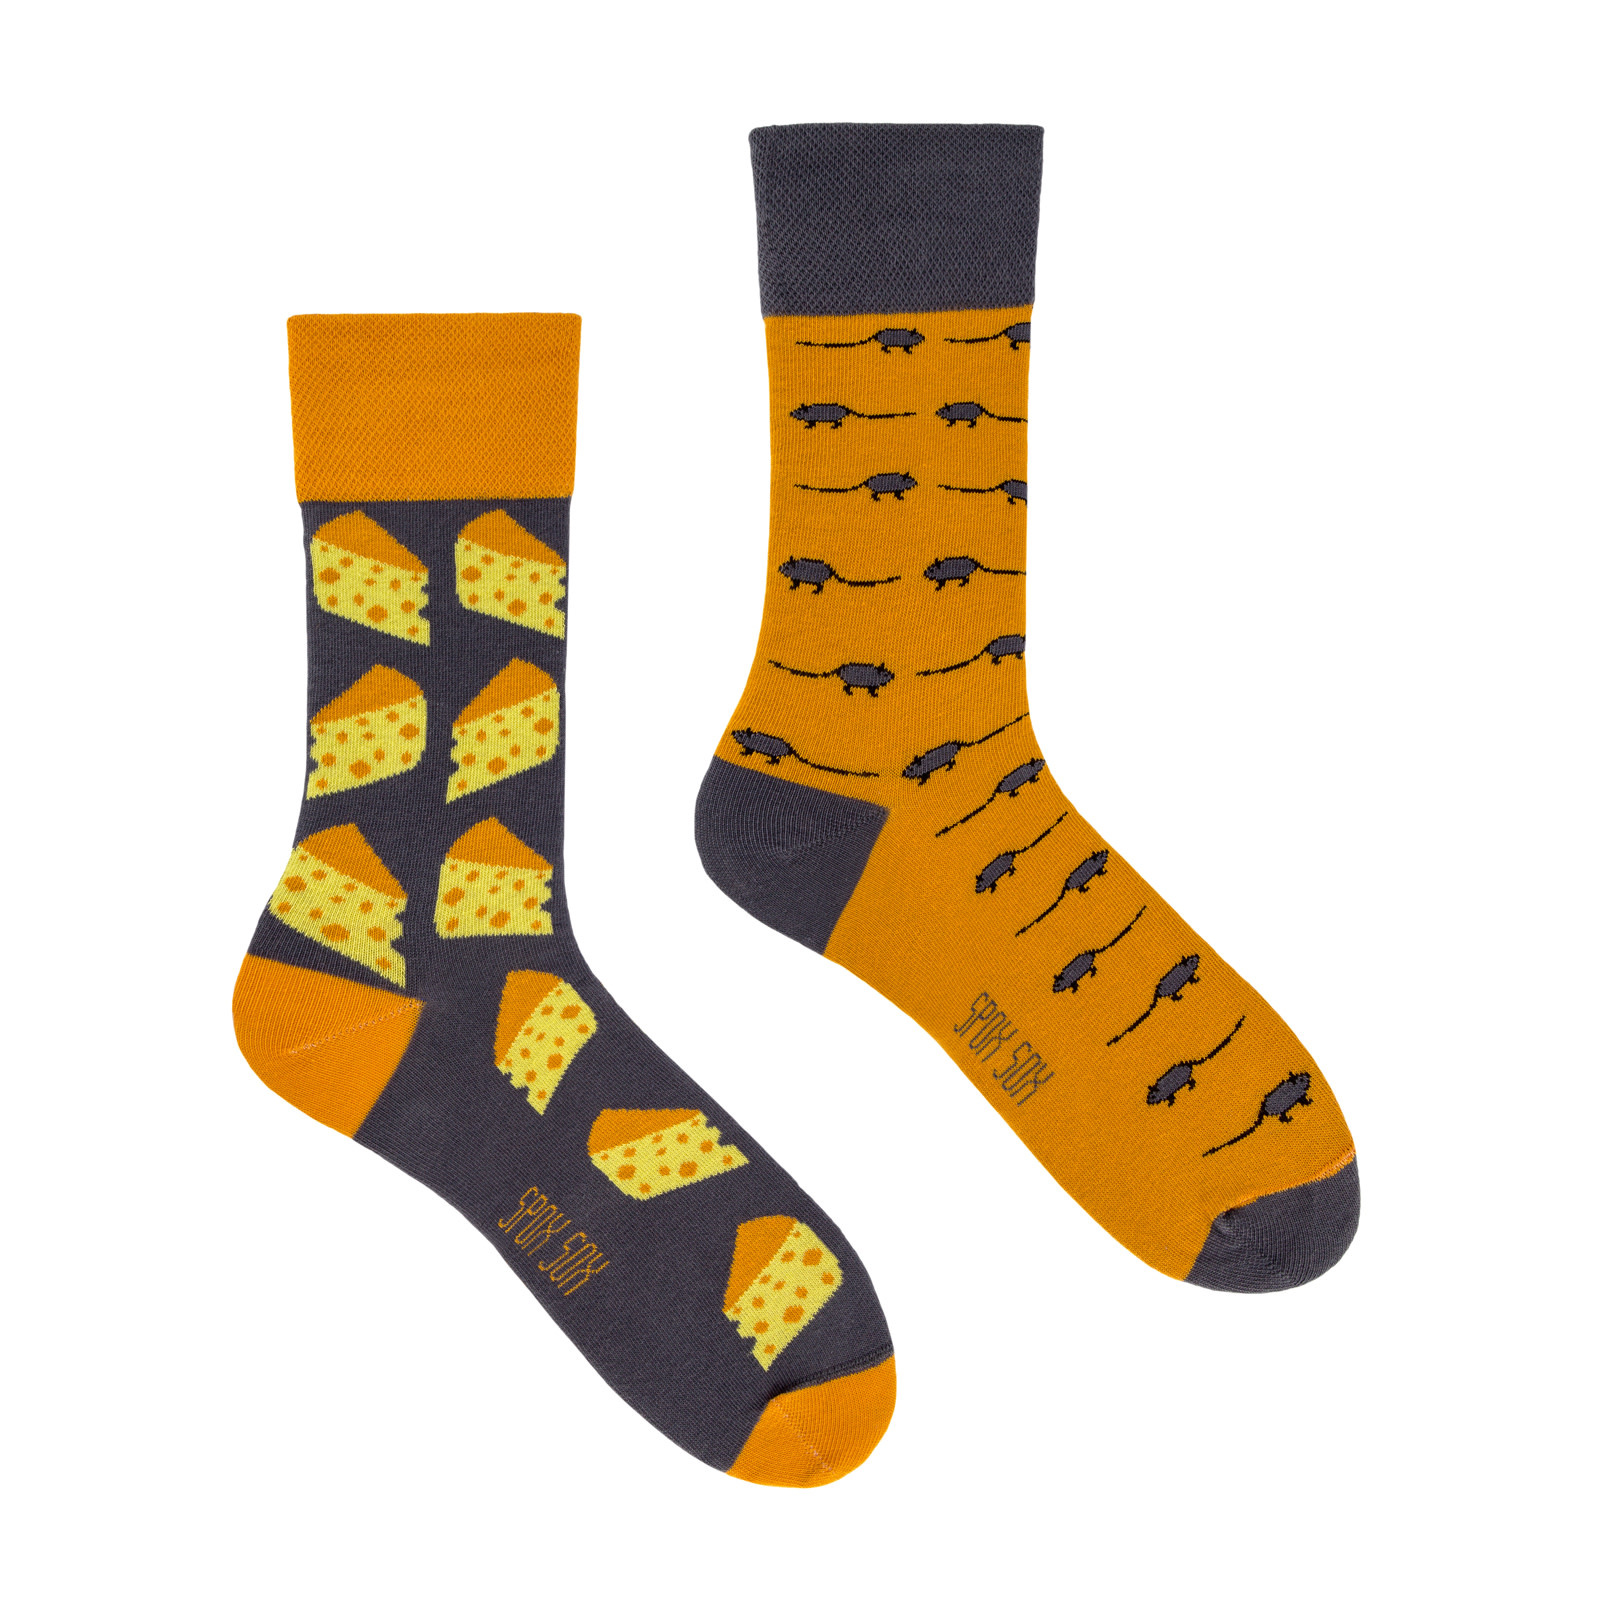 King Stone Socks Mouse & Cheese